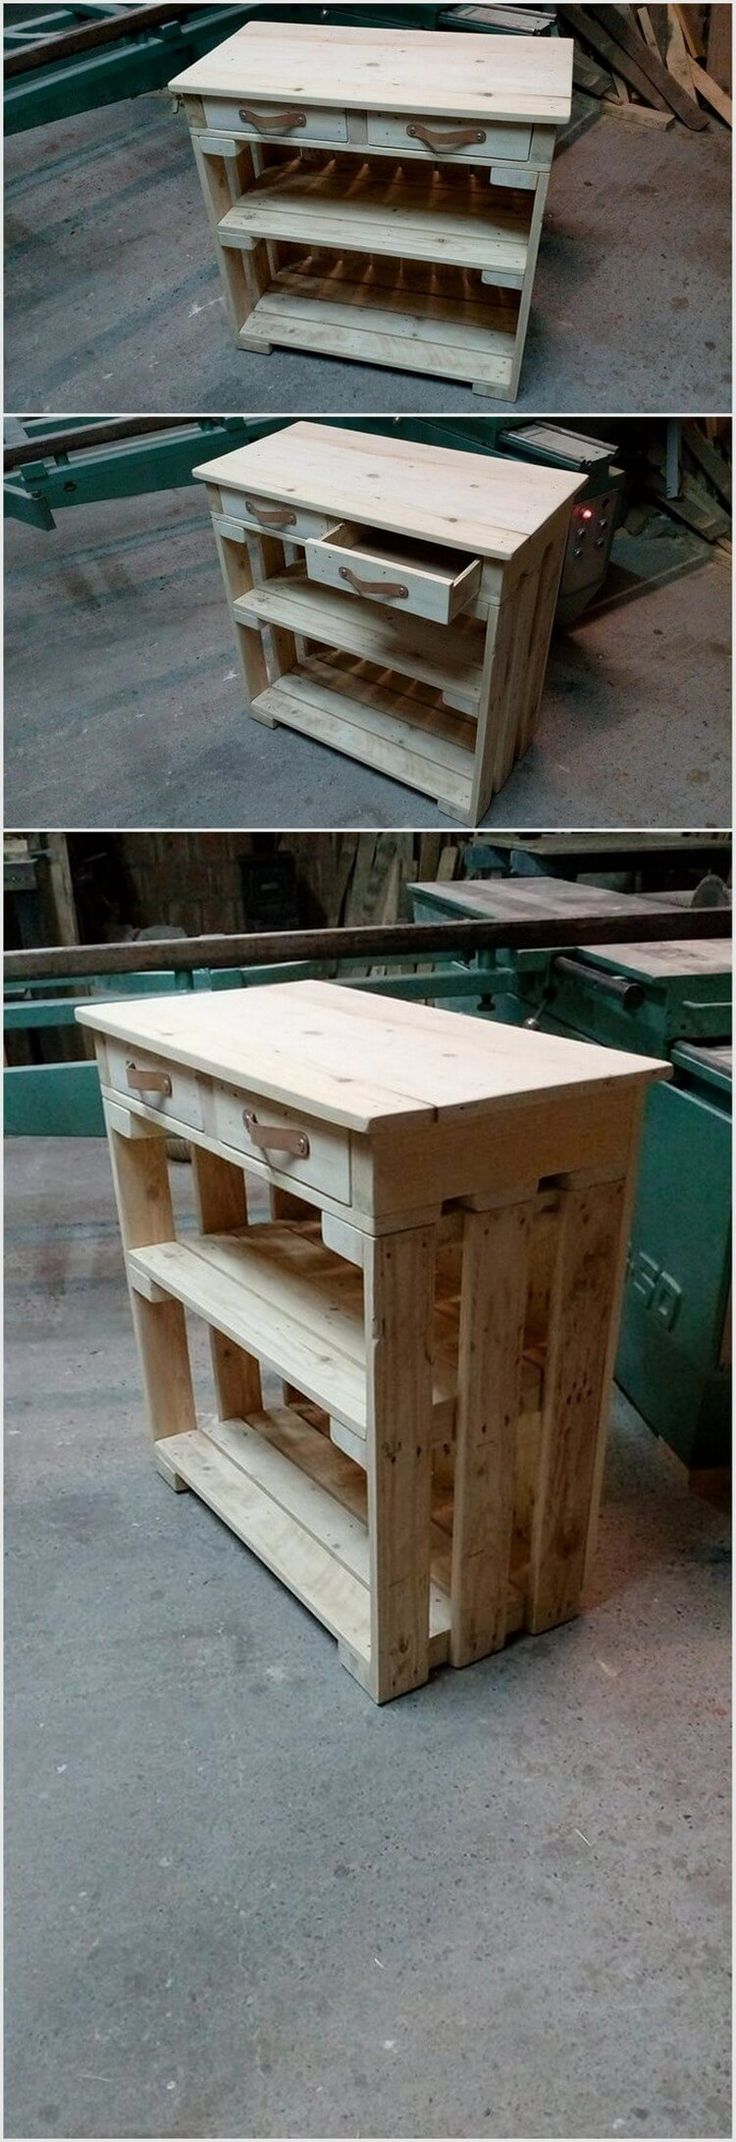 17 best images about old pallets on pinterest shipping for Old wood pallets ideas